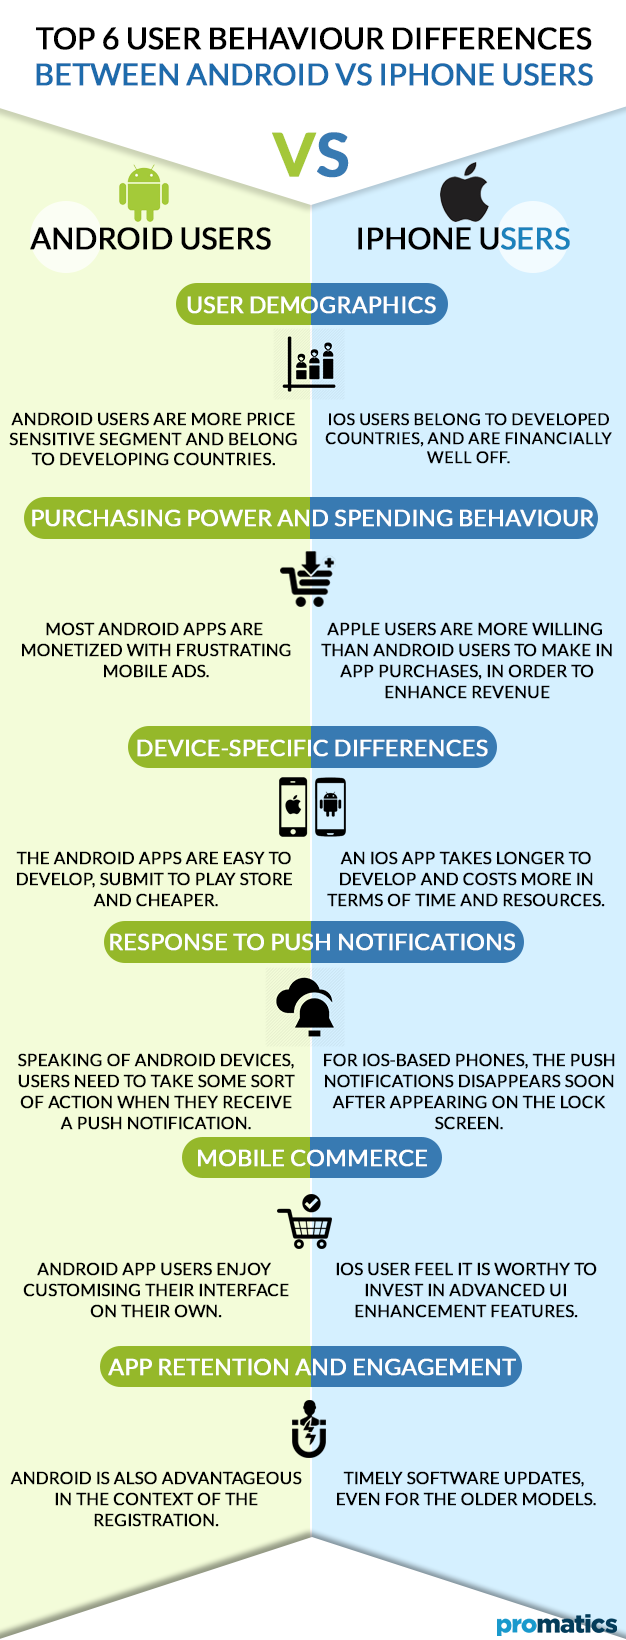 Top 6 user behaviour differences between Android vs iPhone users